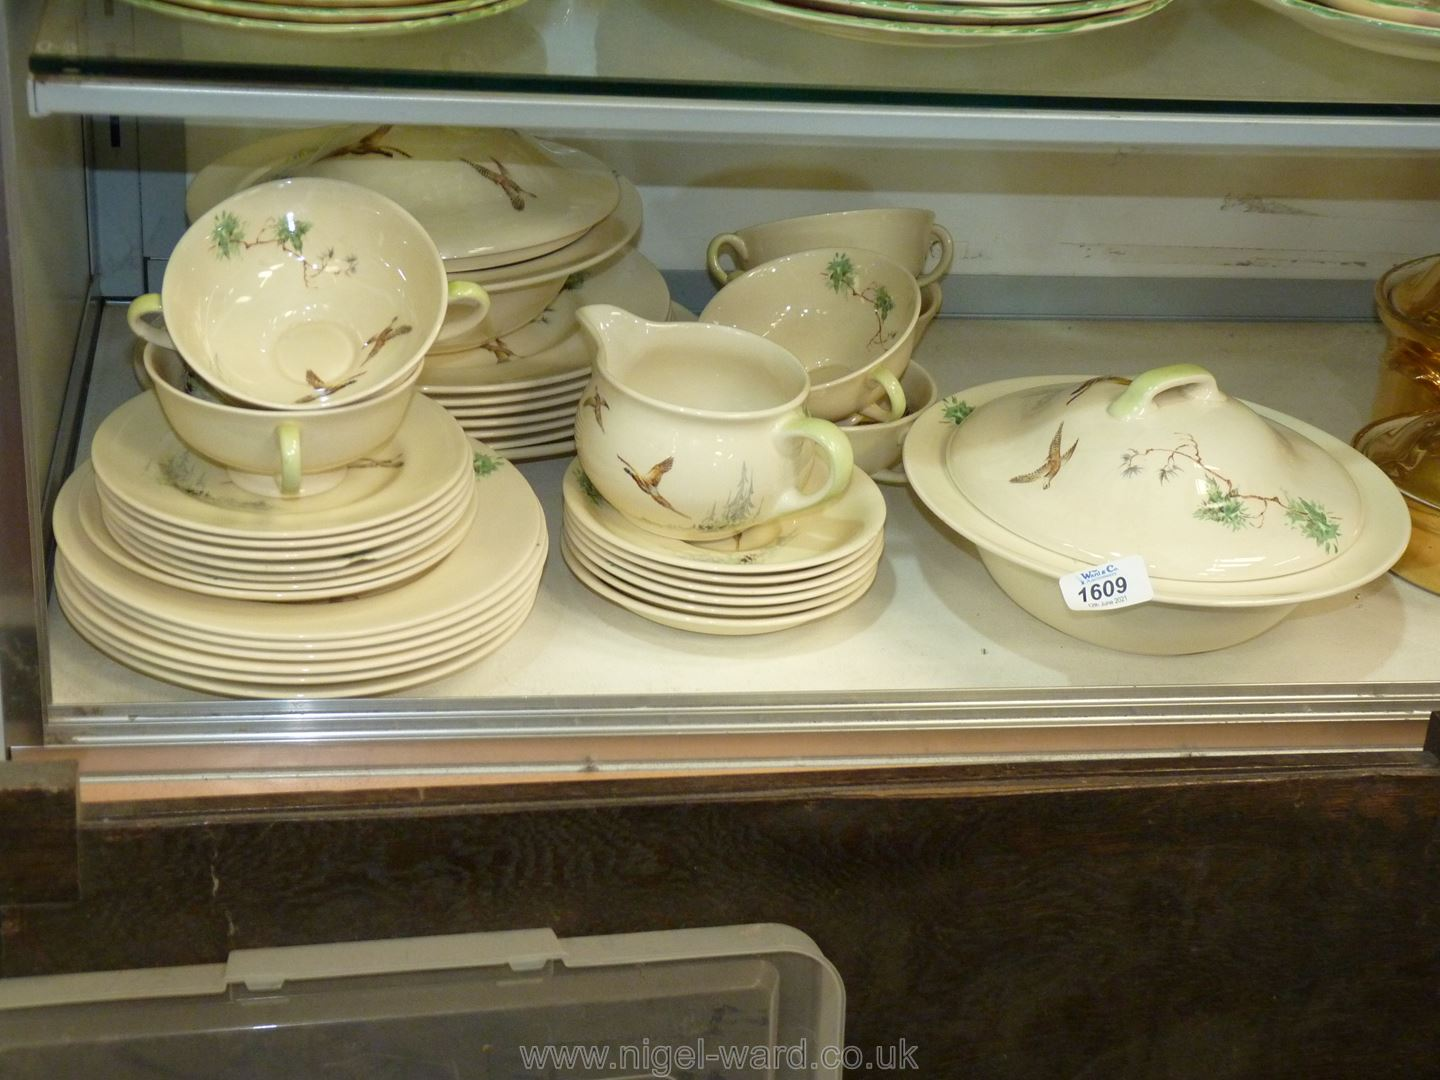 A Royal Doulton part dinner service 'The Coppice' including six two handled soup bowls and saucers,